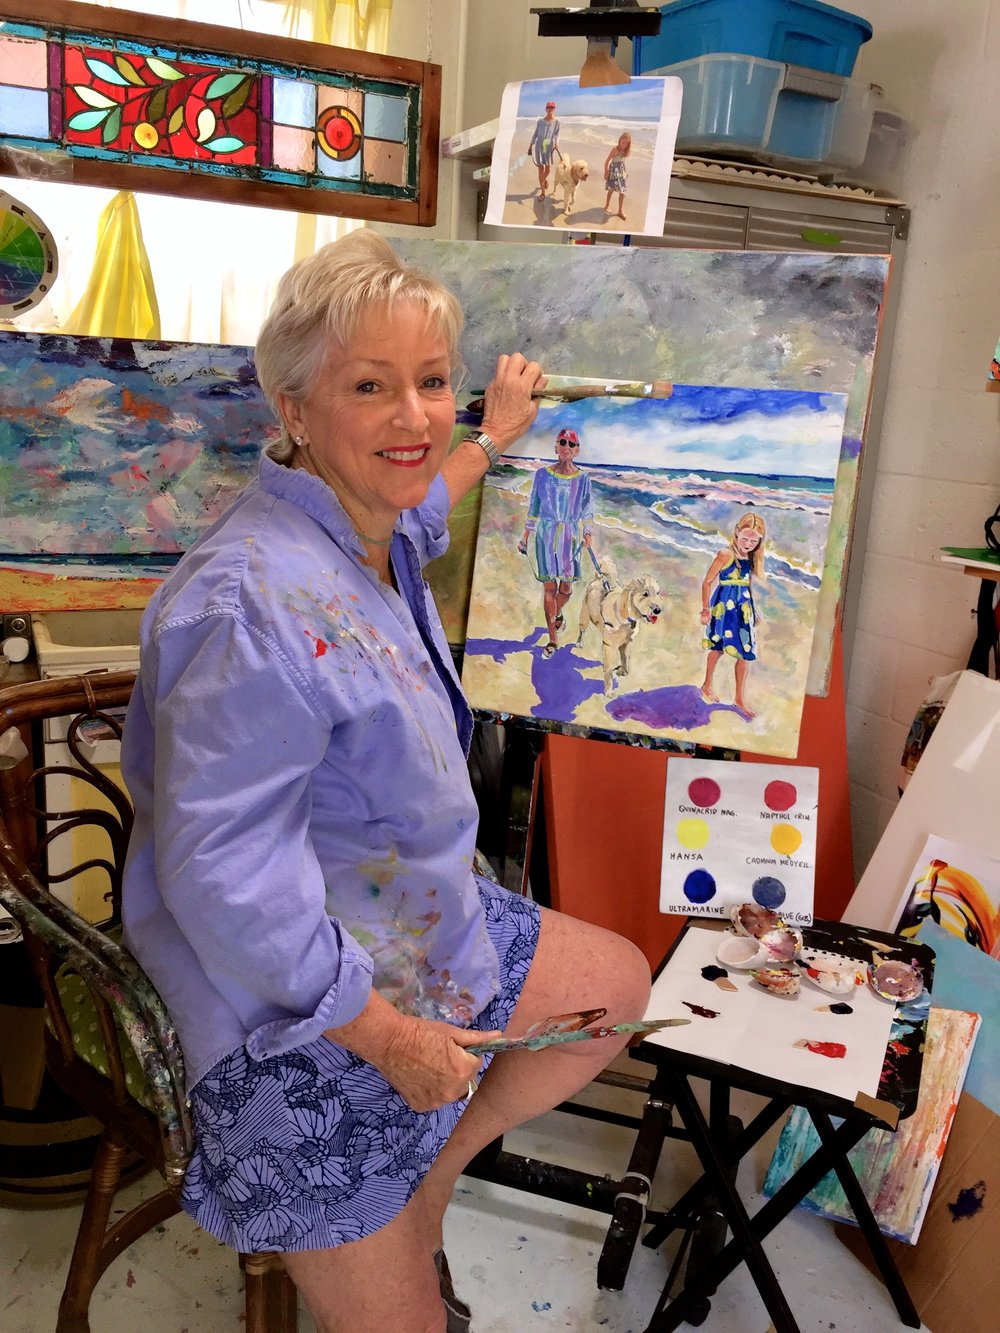 Popo's inspiration comes from nature, museum visits, students and art classes and attending classes and workshops in the US, France and Italy.  Her strongest influence comes from Matisse, Van Gogh and Gale Bennett who was from the Giverny Art Study School  MEMBER: Naples Art Assn, Plastic Club, Philadelphia,  United Arts Council, Center for the Arts of Bonita Springs, Naples Artcrafters, Brigantine Beach Cultural Arts, Goodland Arts Alliance -